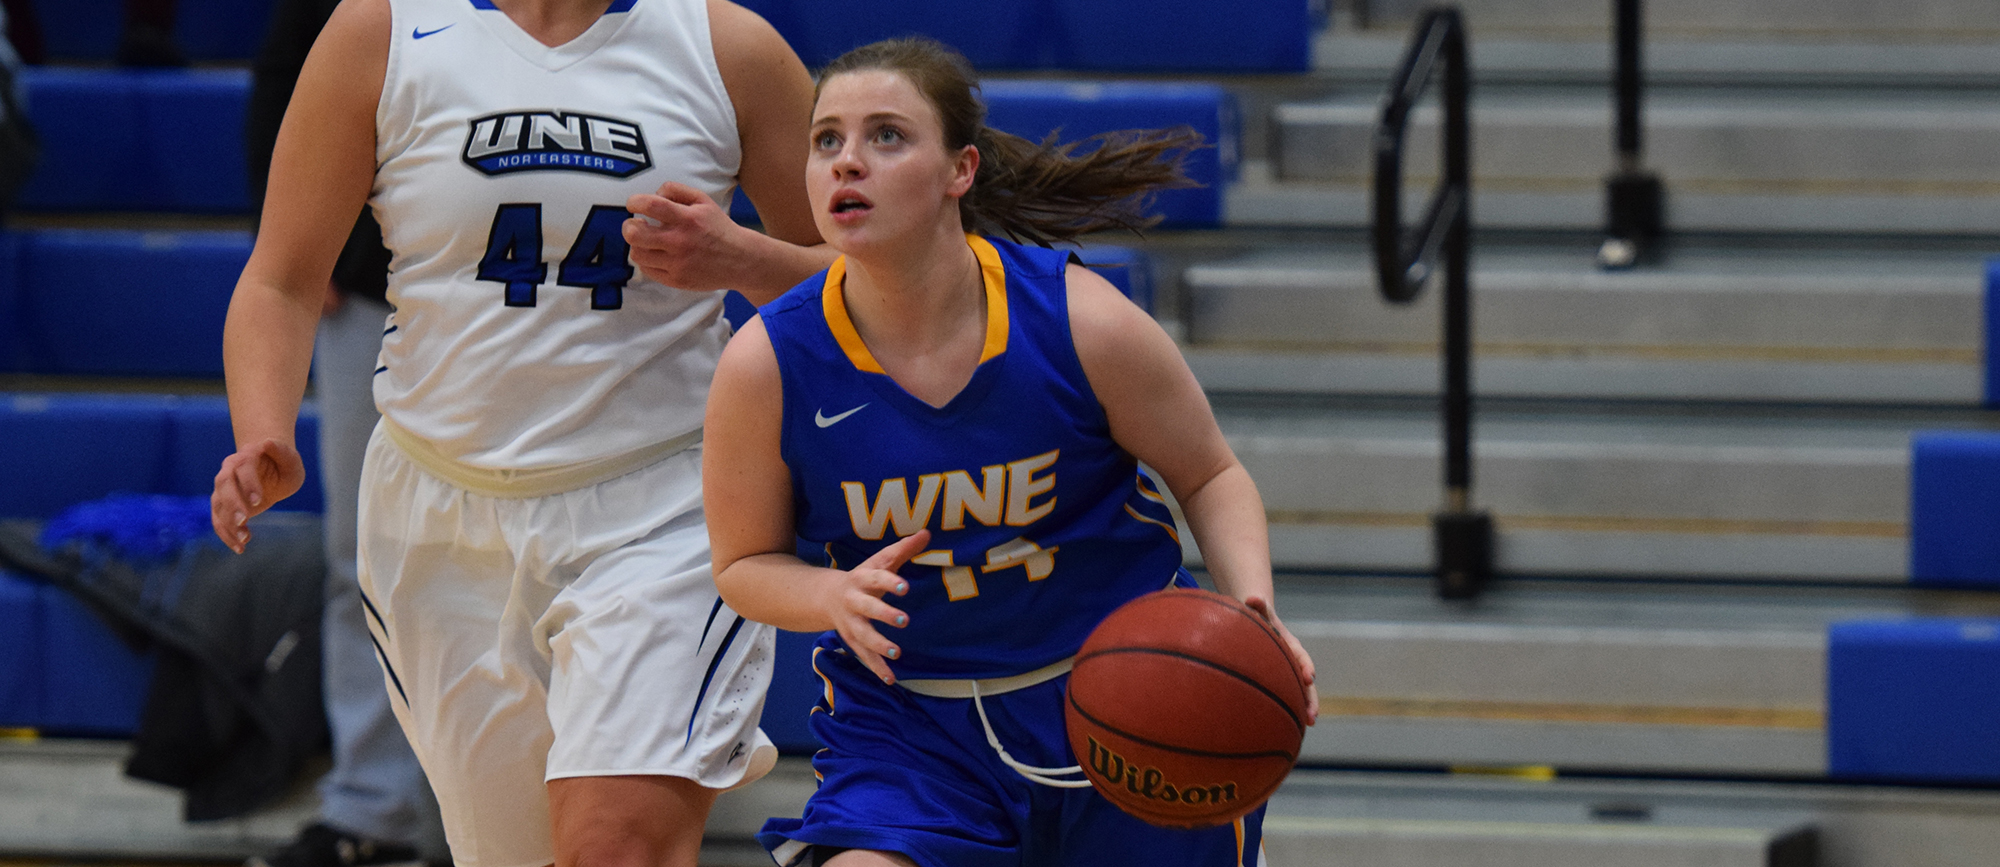 Senior guard Dorothy O'Neill recorded 13 points, six assists and three rebounds in Western New England's CCC semifinal loss at UNE on Thursday night.